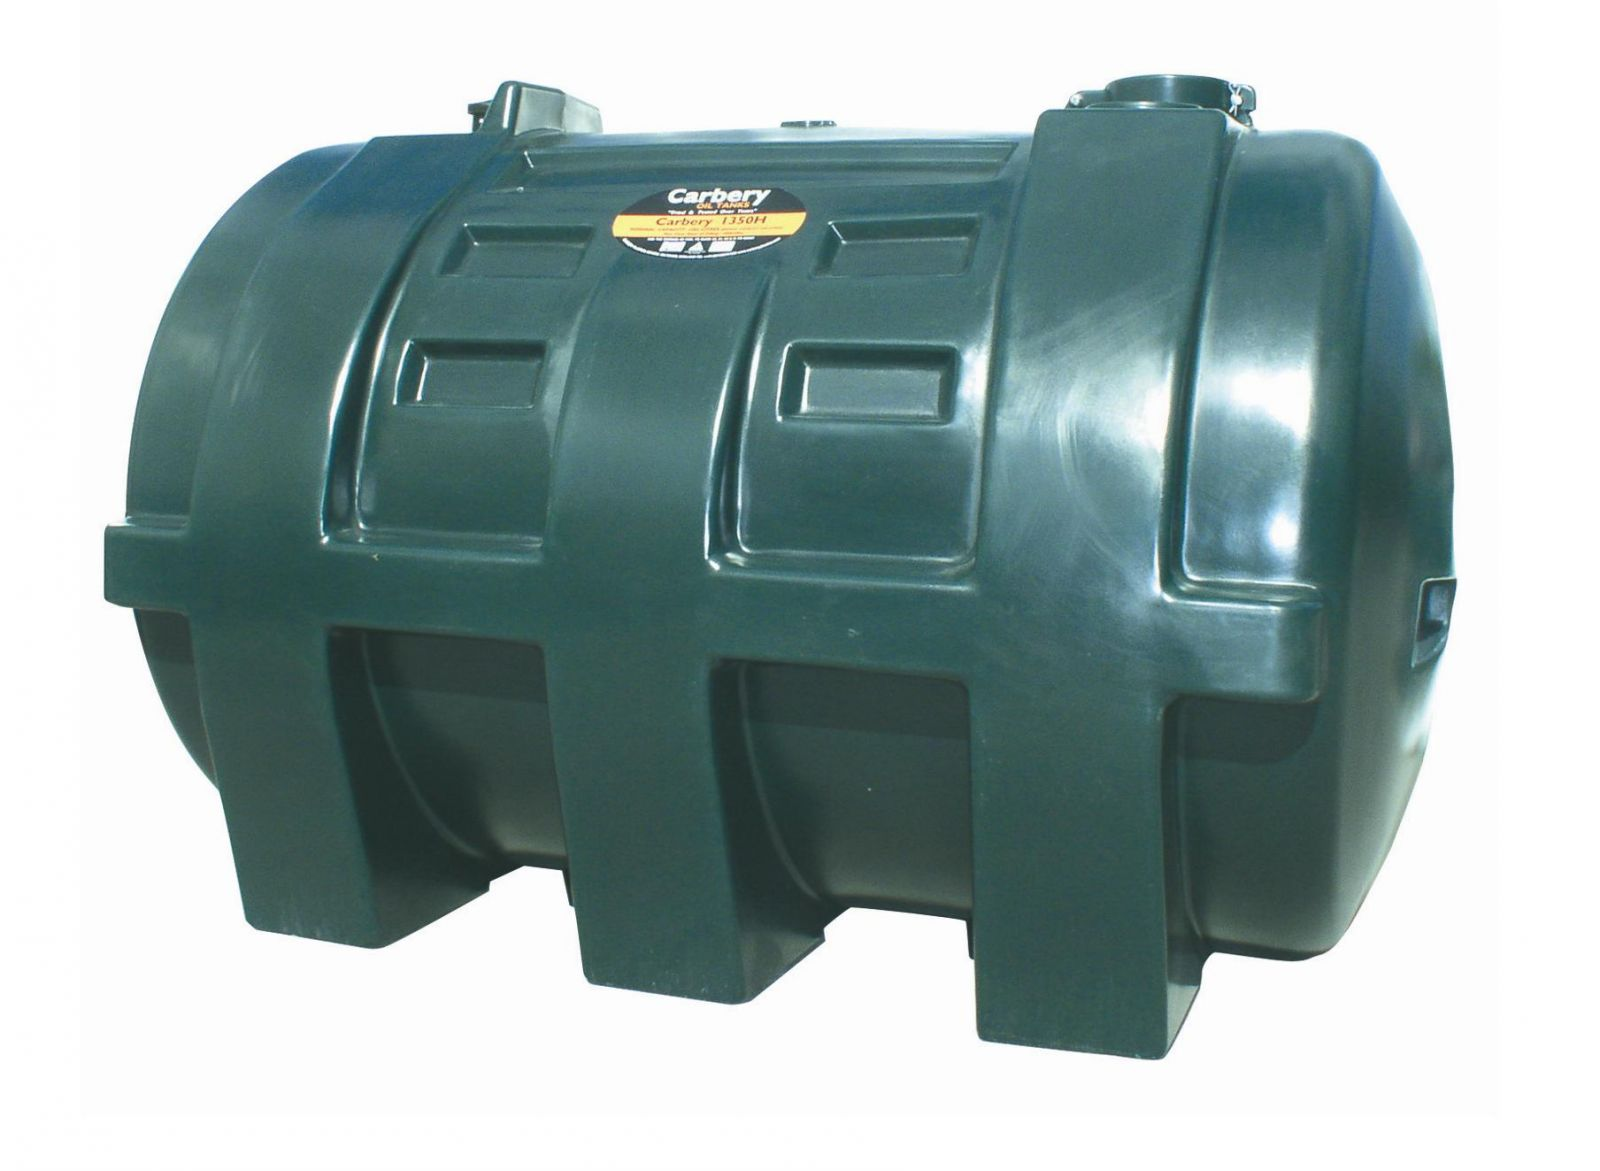 Carbery 1350H Horizontal Single Skin Oil Tank